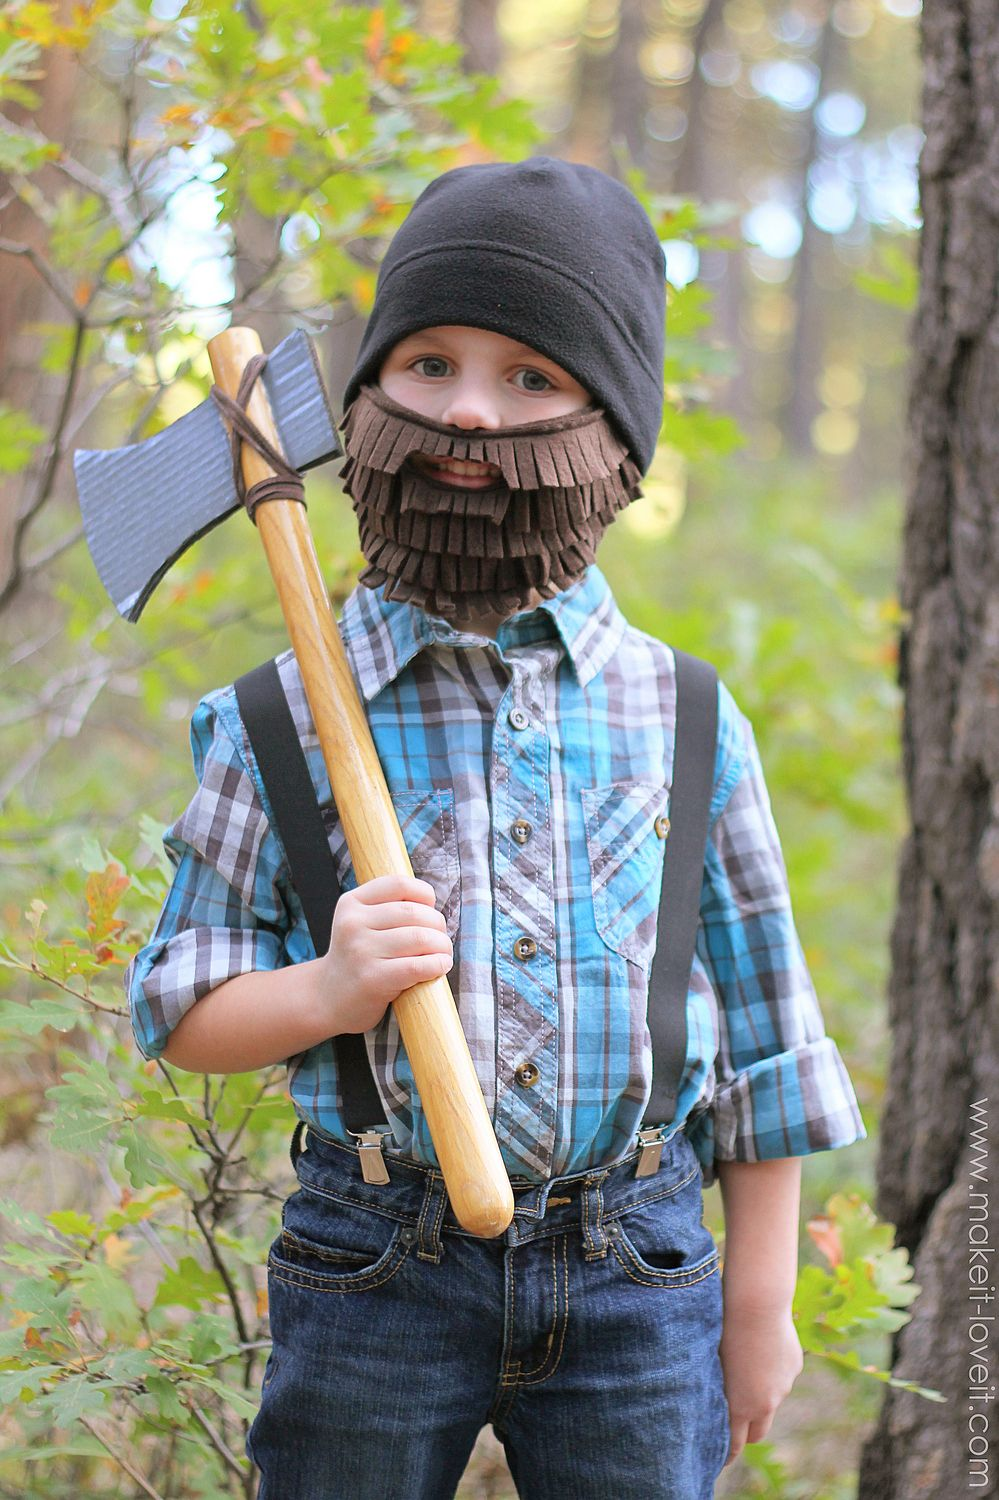 58 utterly adorable homemade halloween costumes for kids - Child Halloween Costumes Homemade